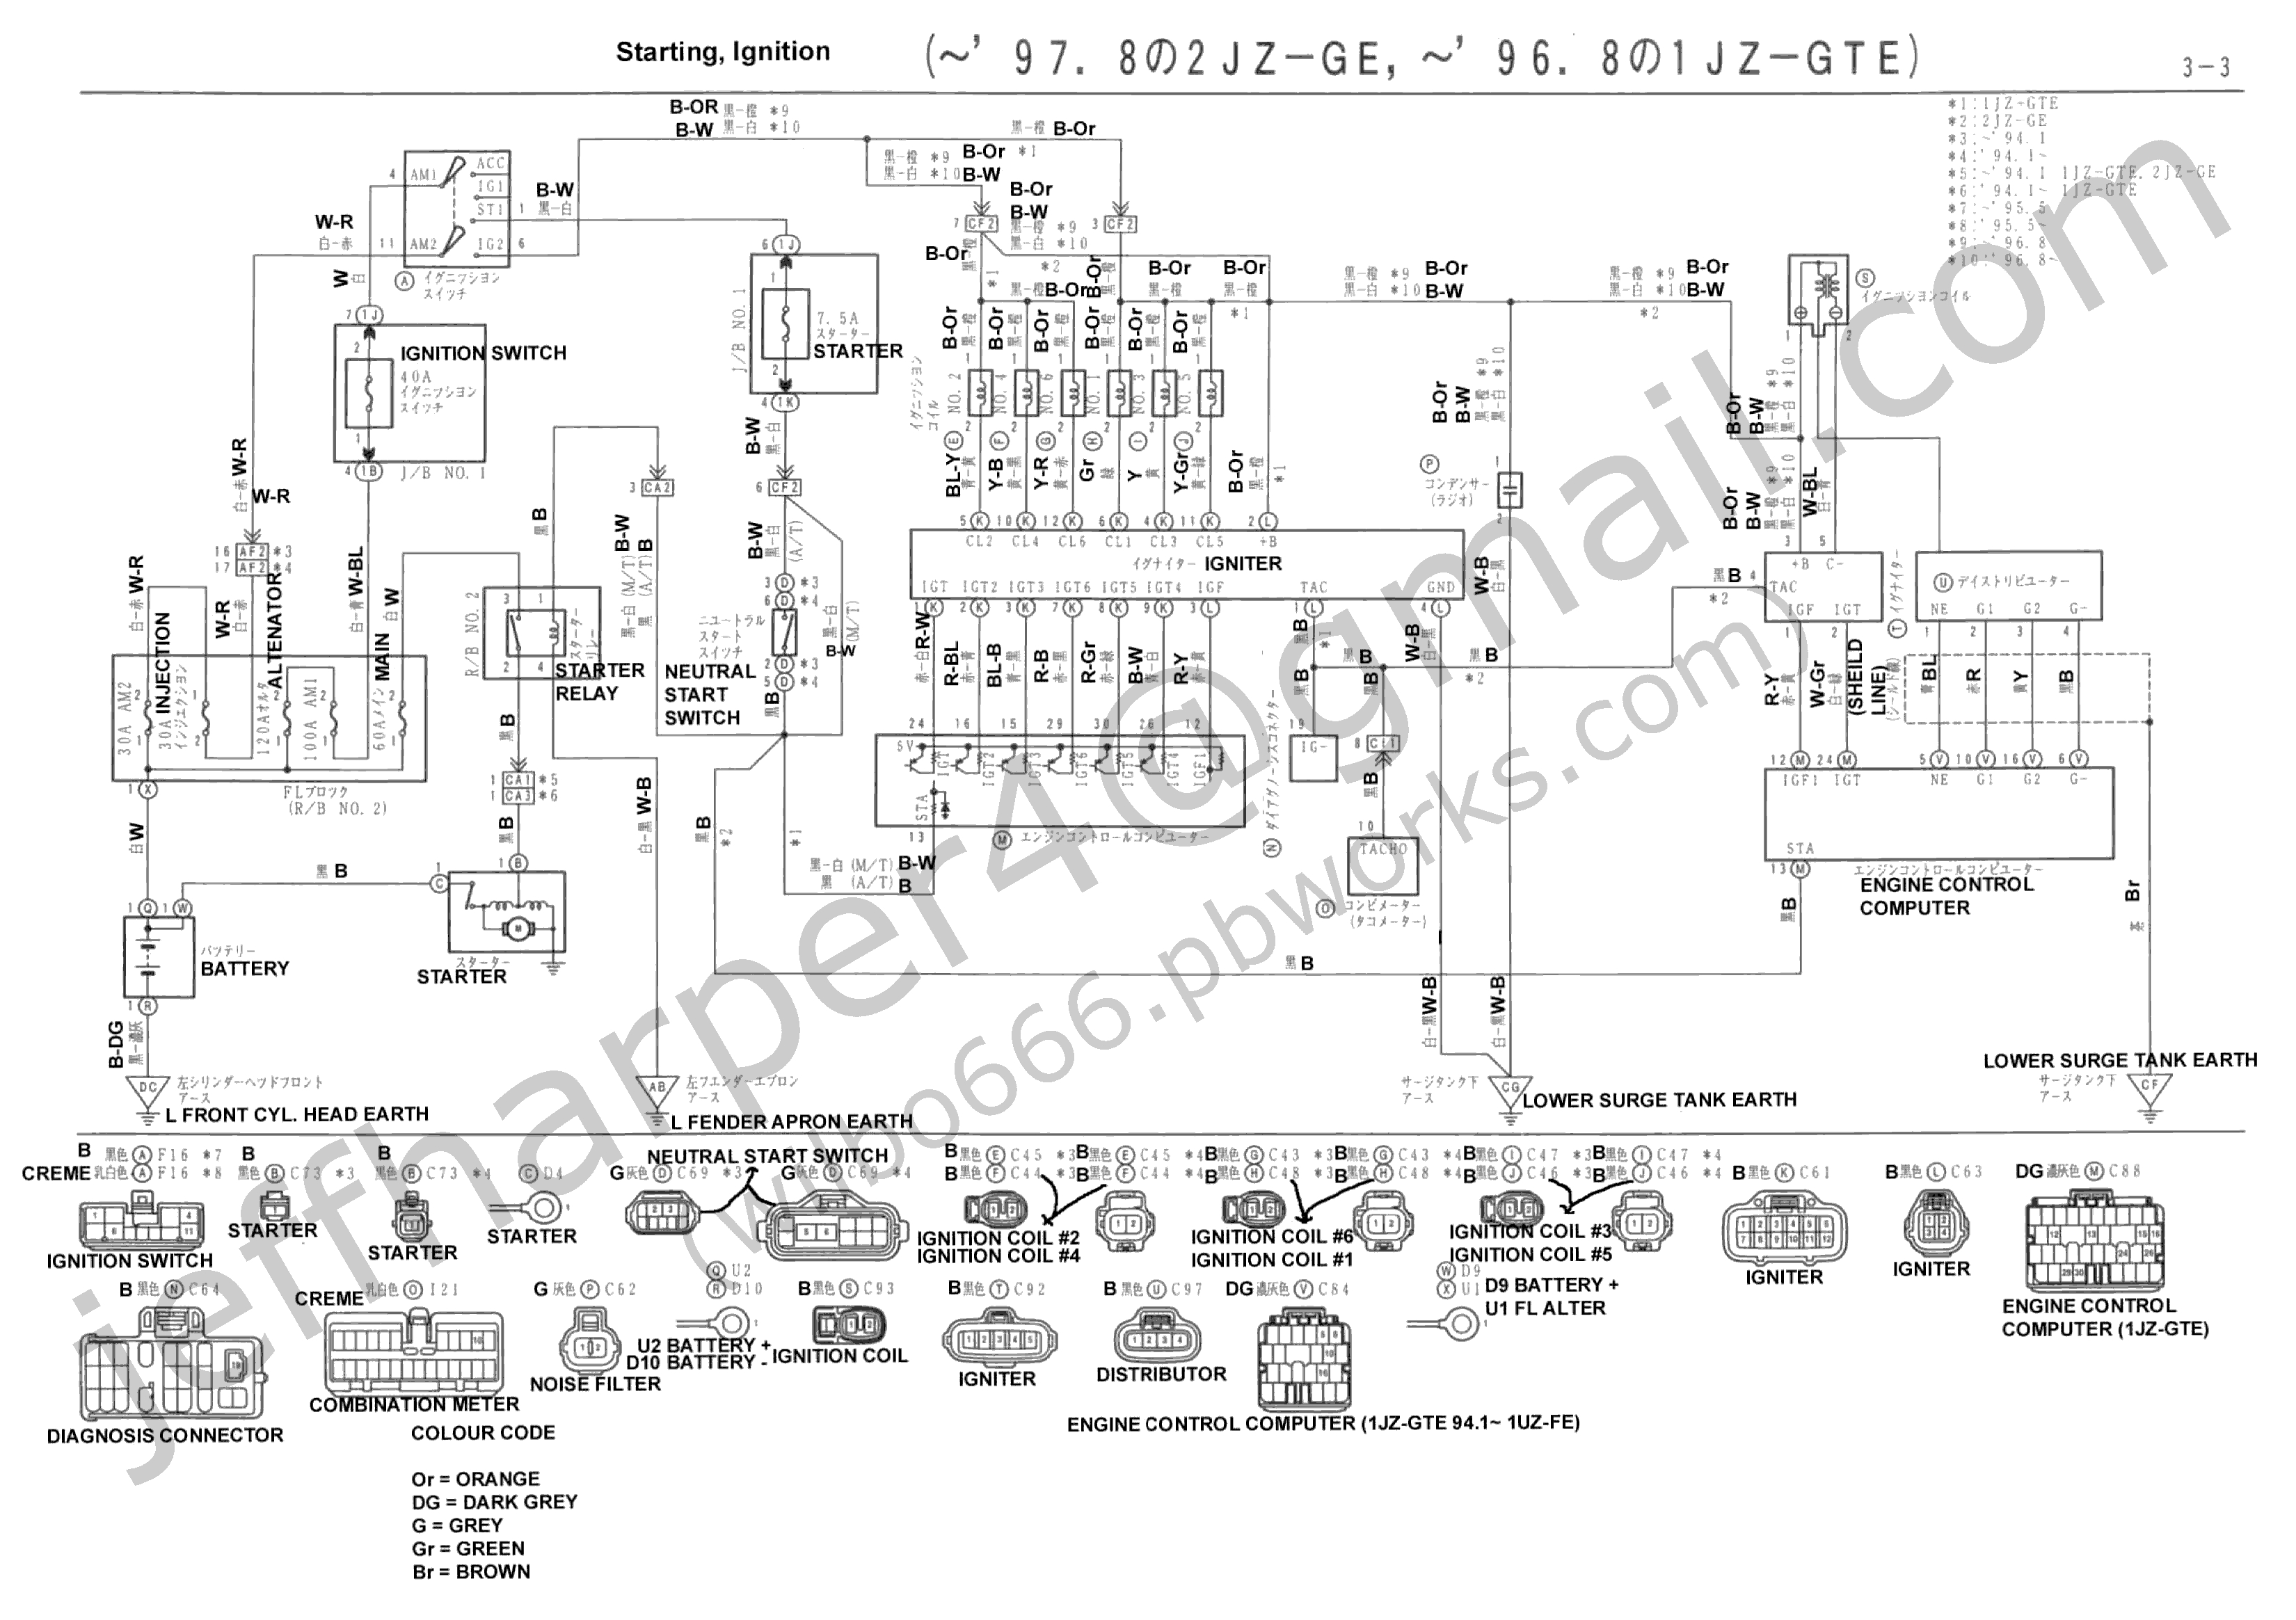 Honda Civic Ignition Wiring Diagram